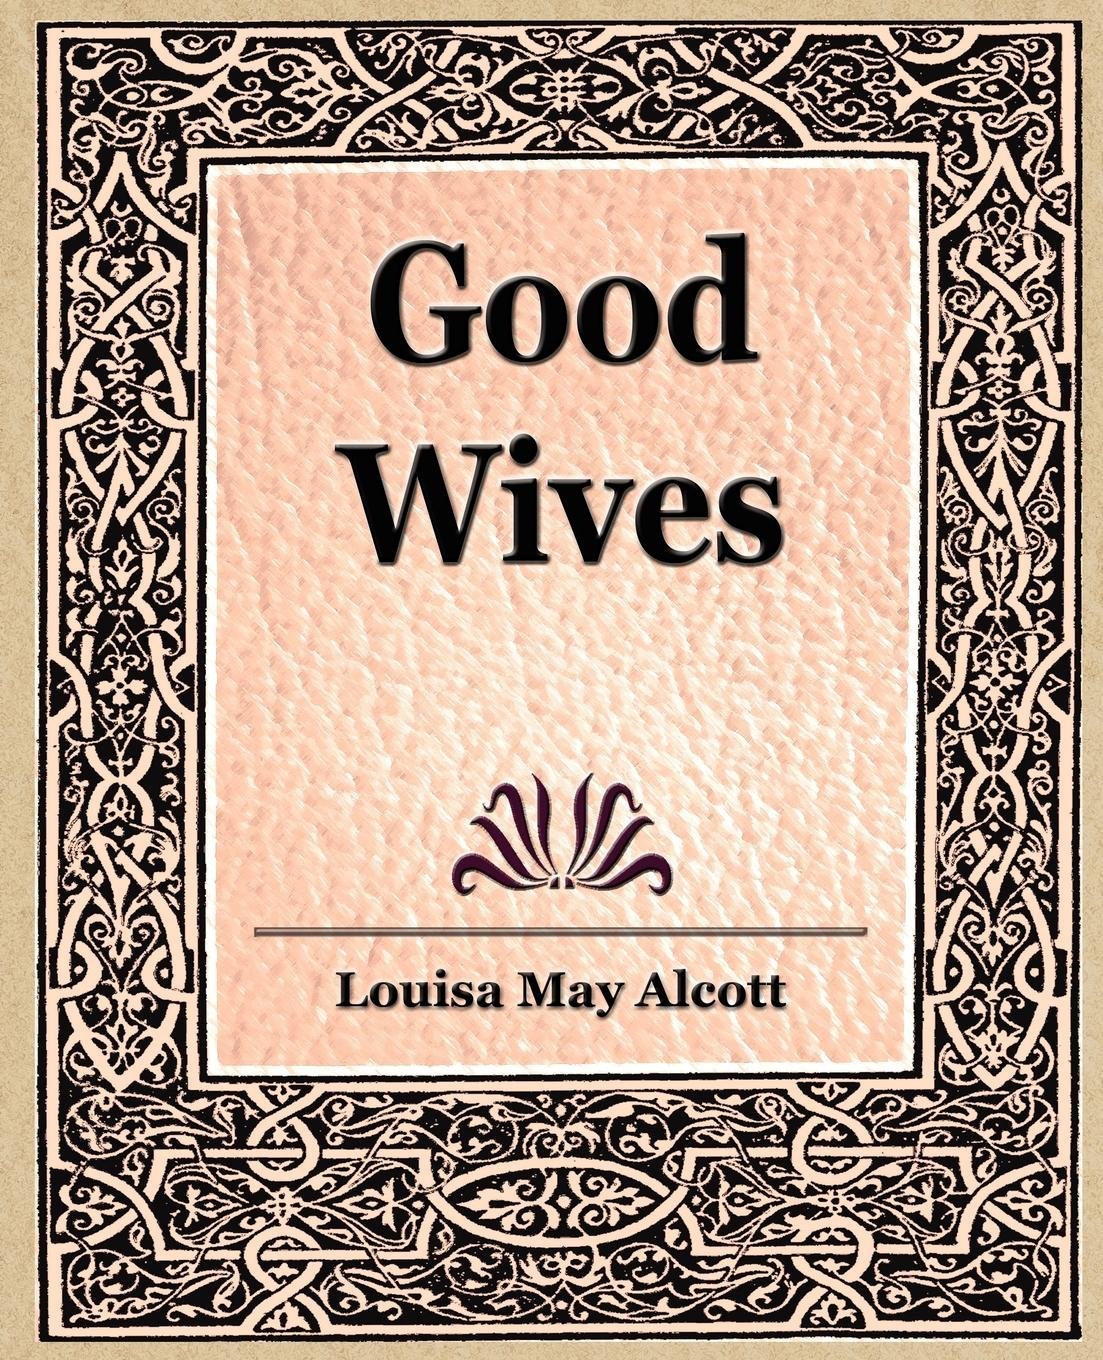 Louisa May Alcott, May Alcott Louisa May Alcott, Alcott Louisa May Good Wives